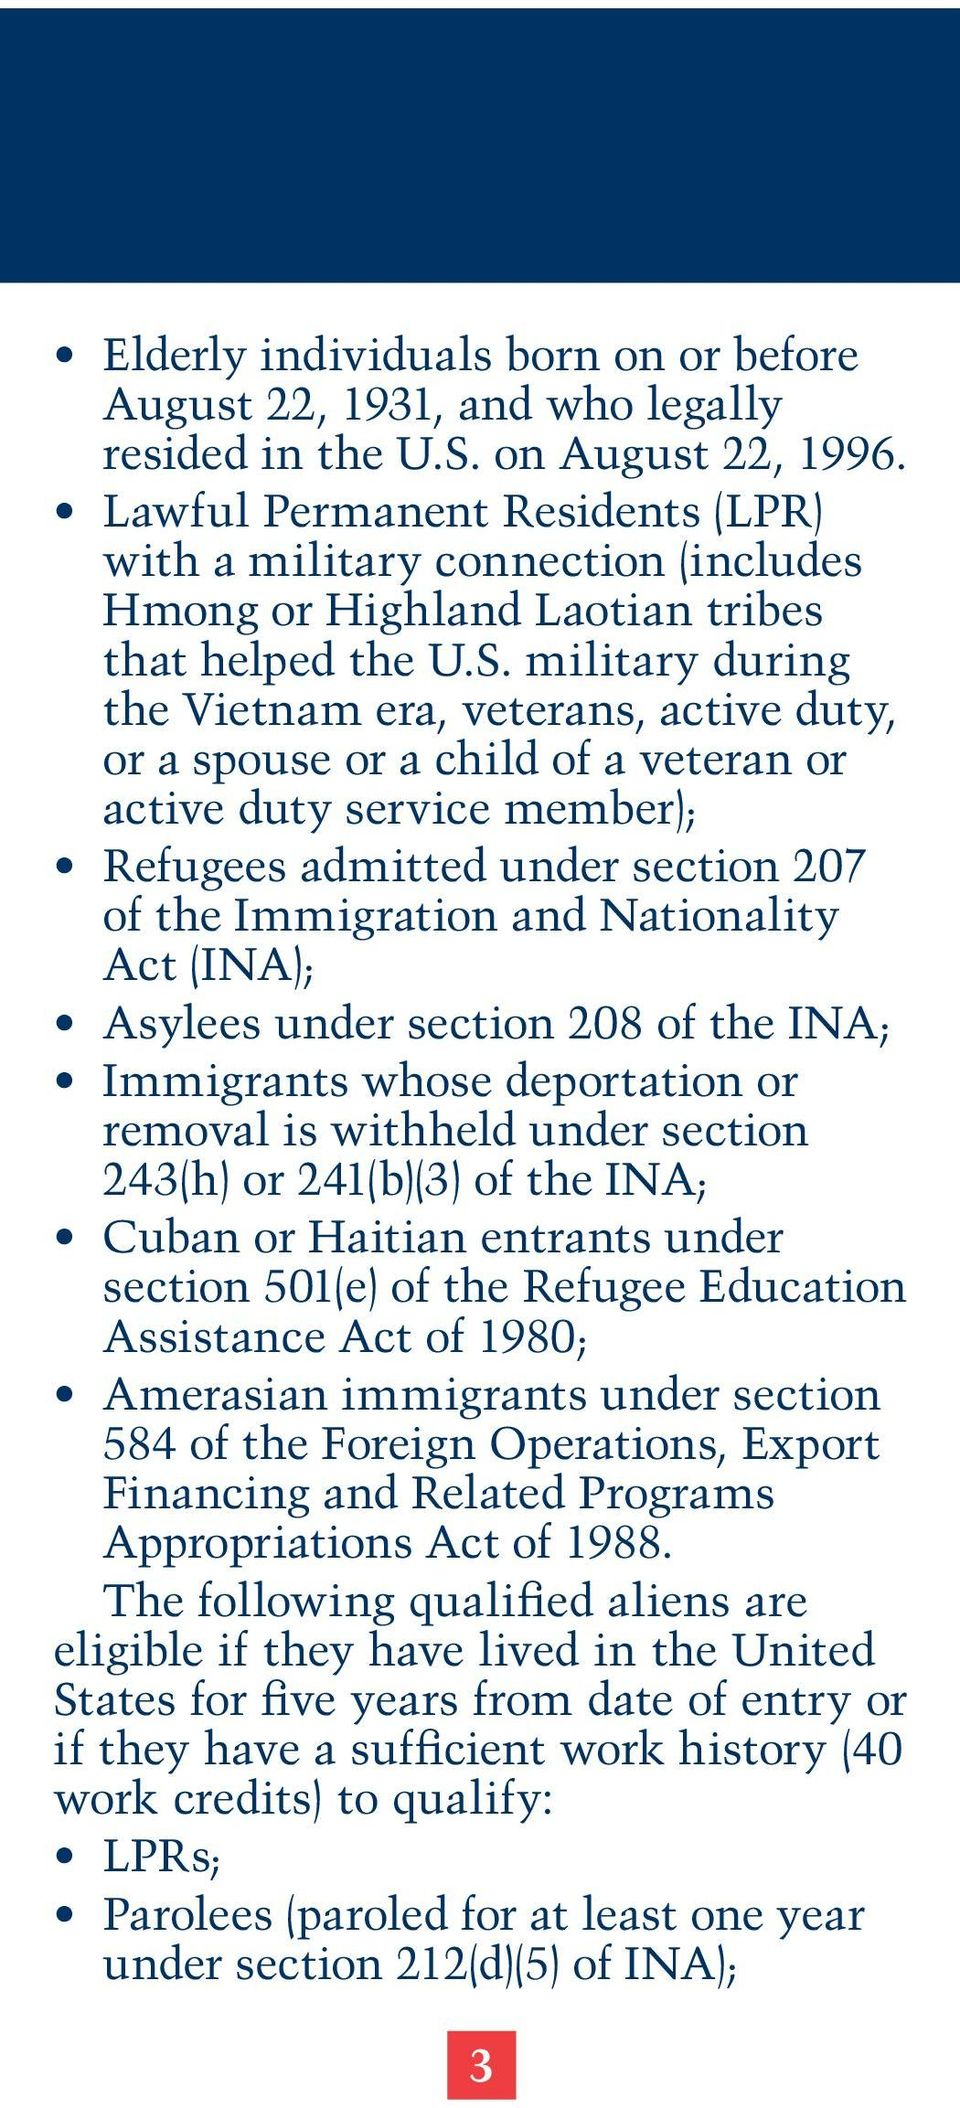 military during the Vietnam era, veterans, active duty, or a spouse or a child of a veteran or active duty service member); Refugees admitted under section 207 of the Immigration and Nationality Act